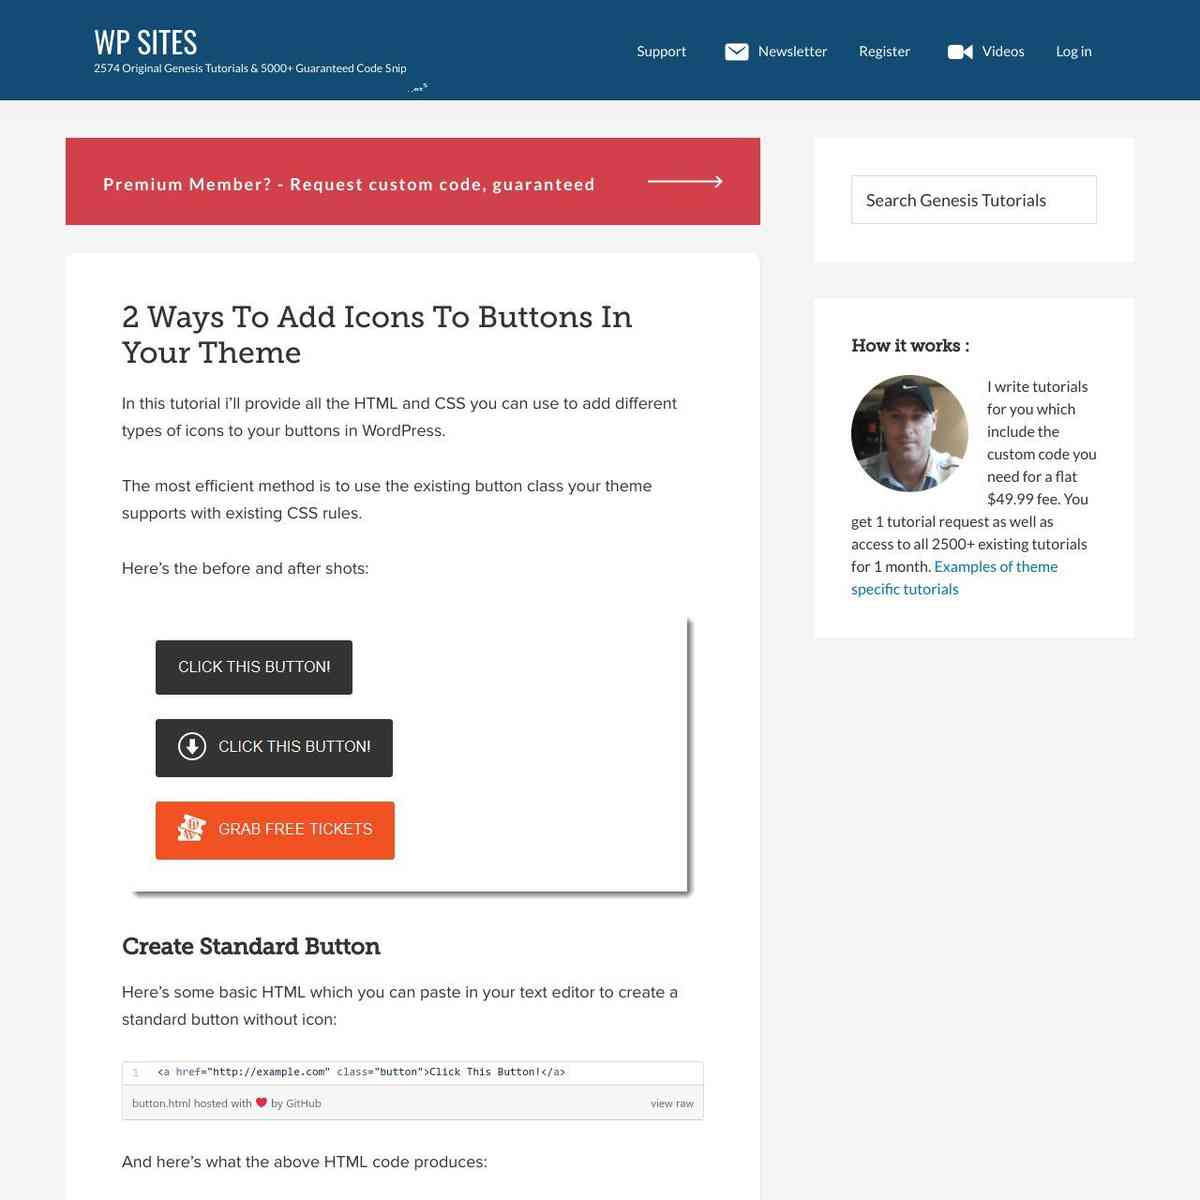 wpsites.net/web-design/add-icons-to-buttons-in-wordpress-themes/